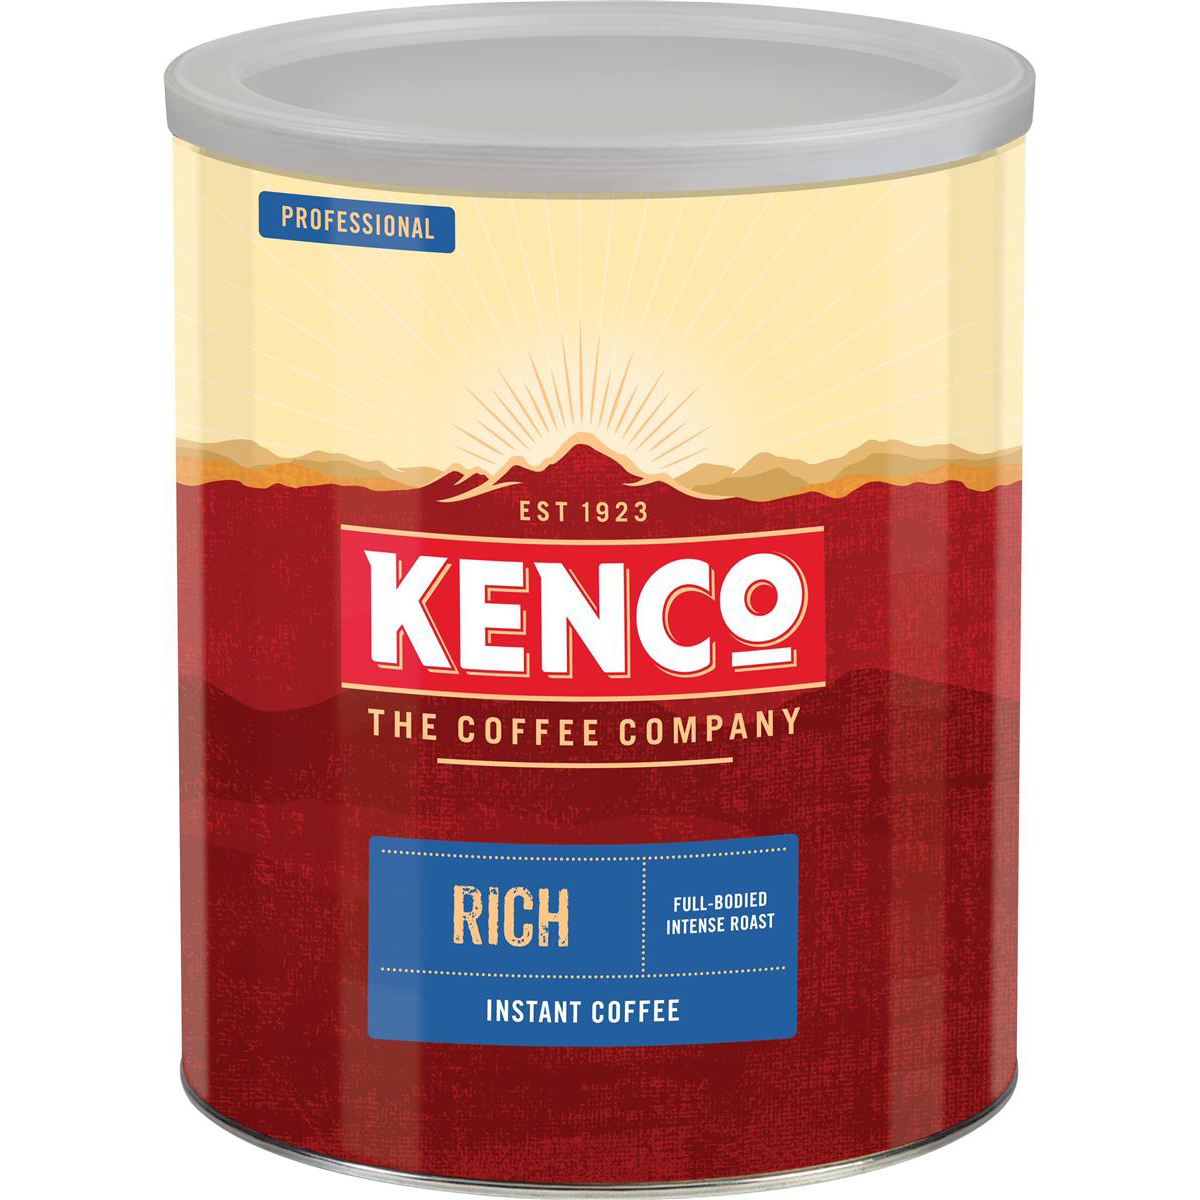 Coffee Kenco Really Rich Instant Coffee Tin 750g Ref 4032089